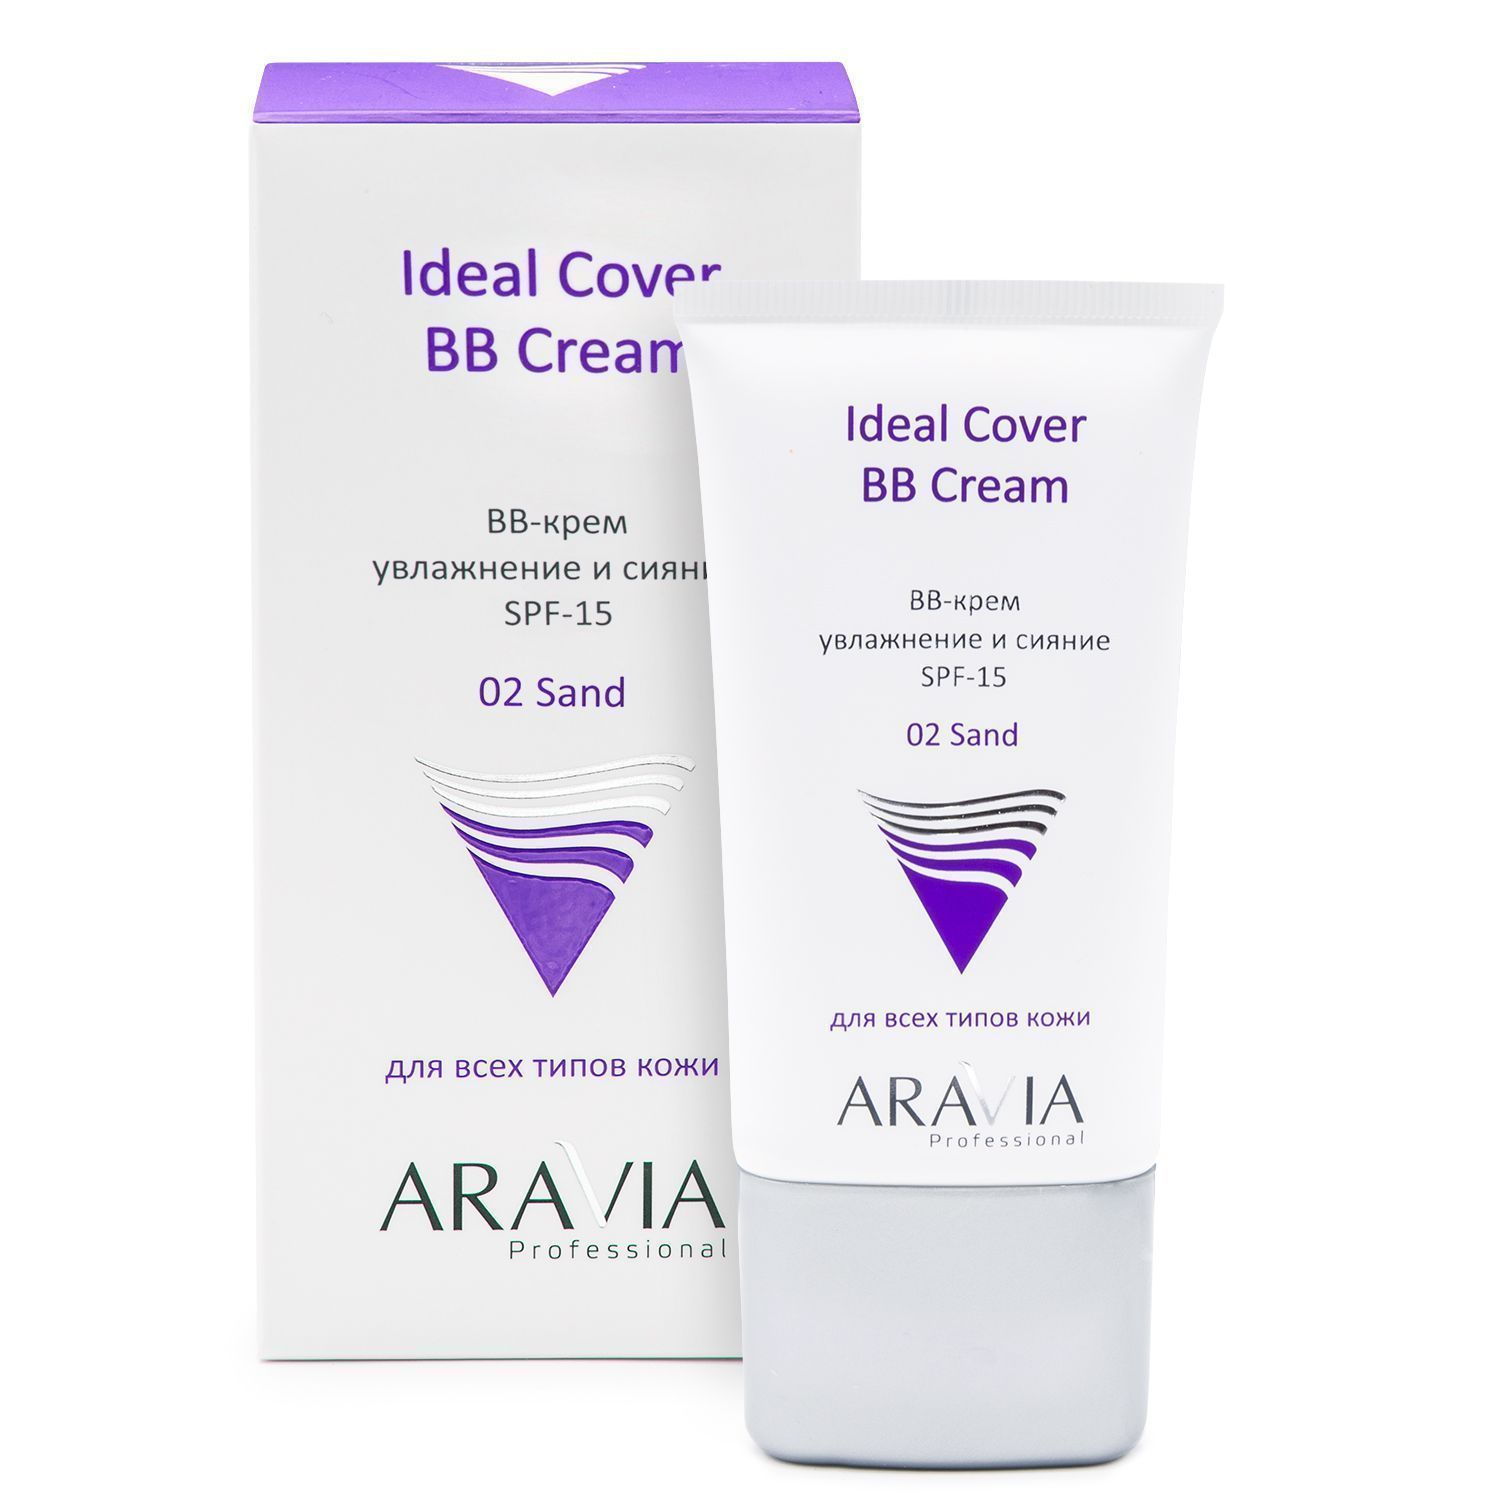 ARAVIA Professional BB-крем увлажняющий SPF-15 Ideal Cover BB-Cream тон 02, туба 50мл